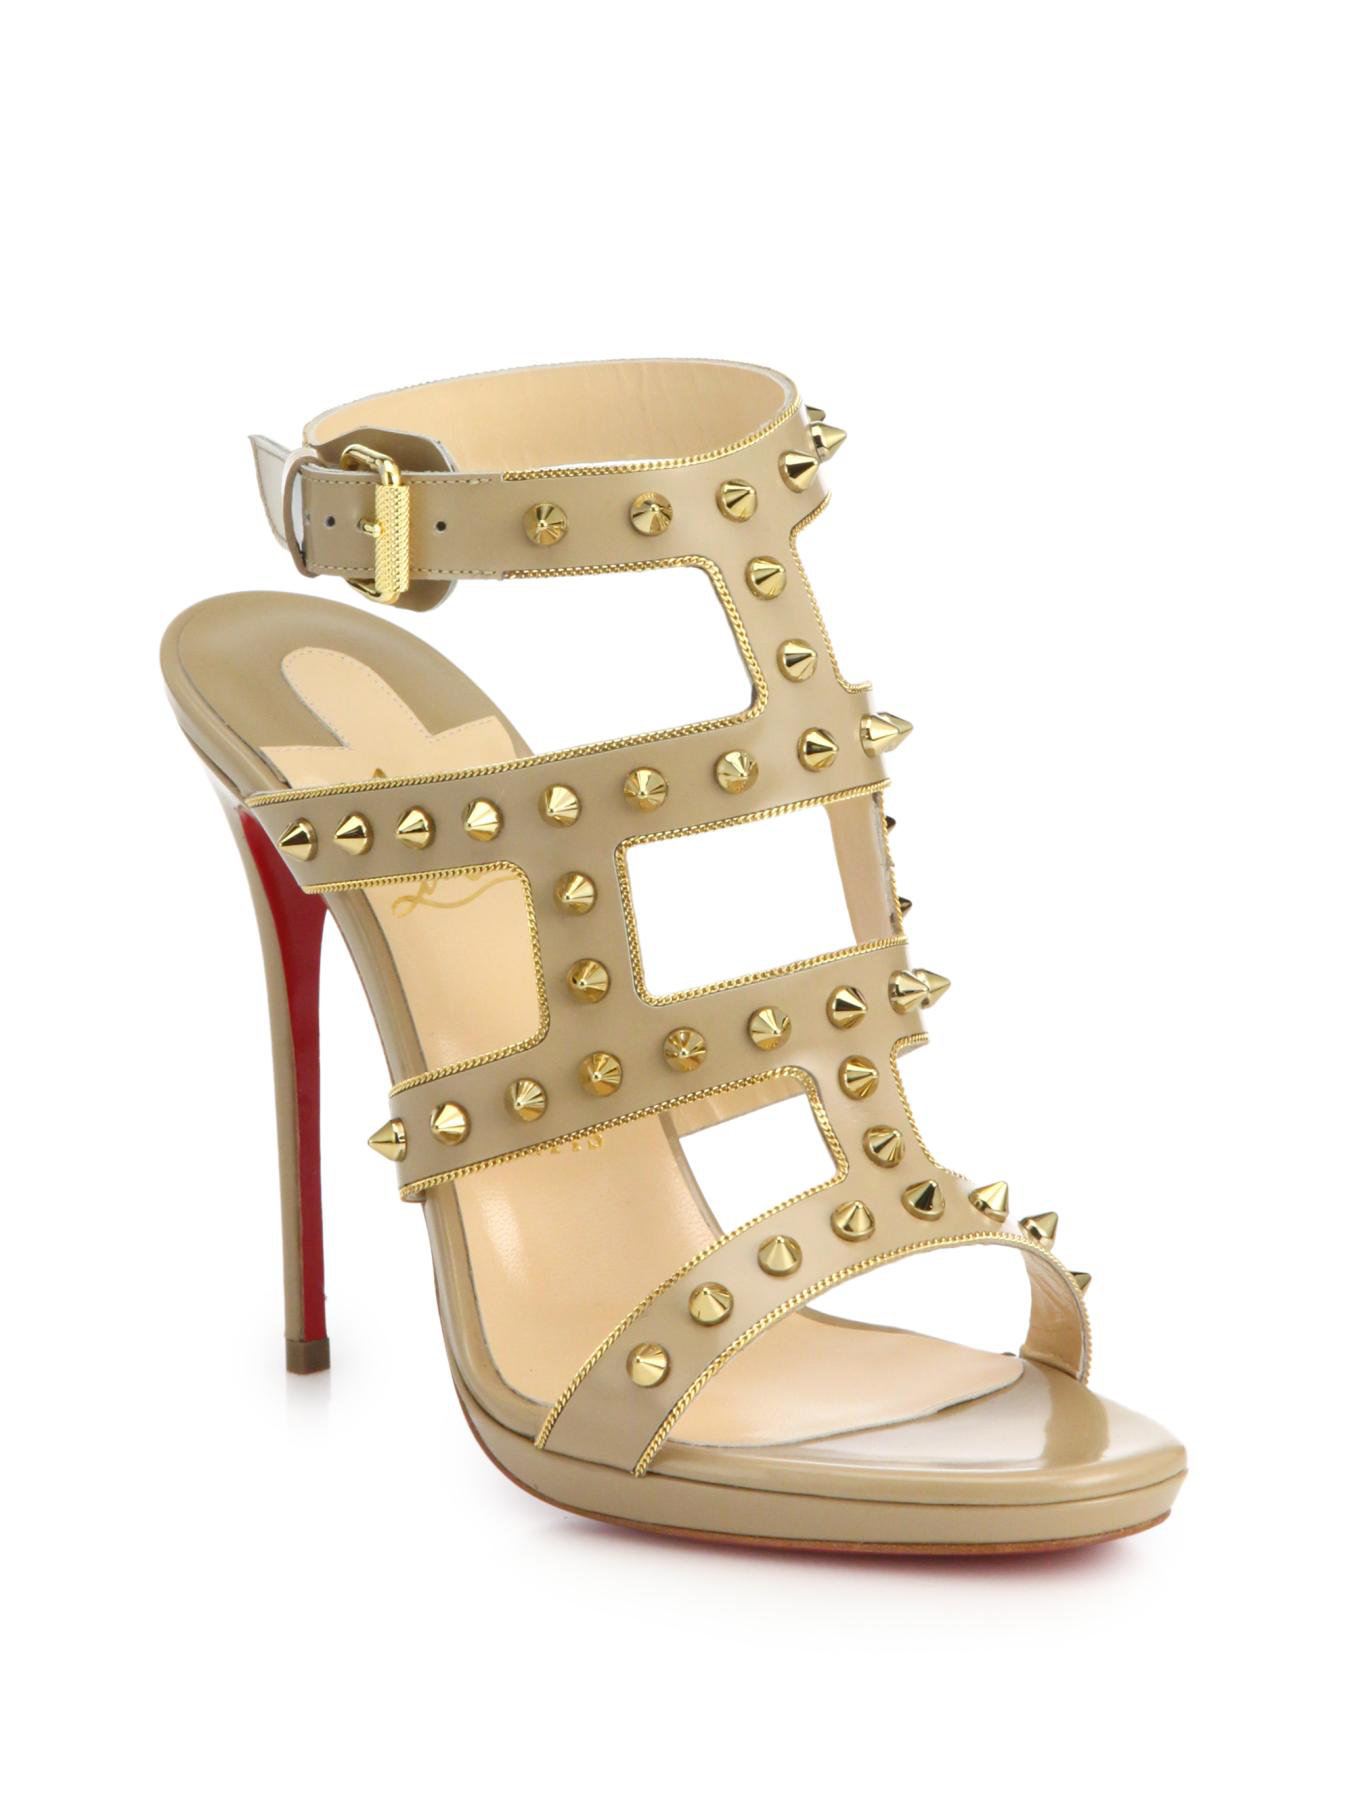 christian louboutin leather ruched sandals | Boulder Poetry Tribe